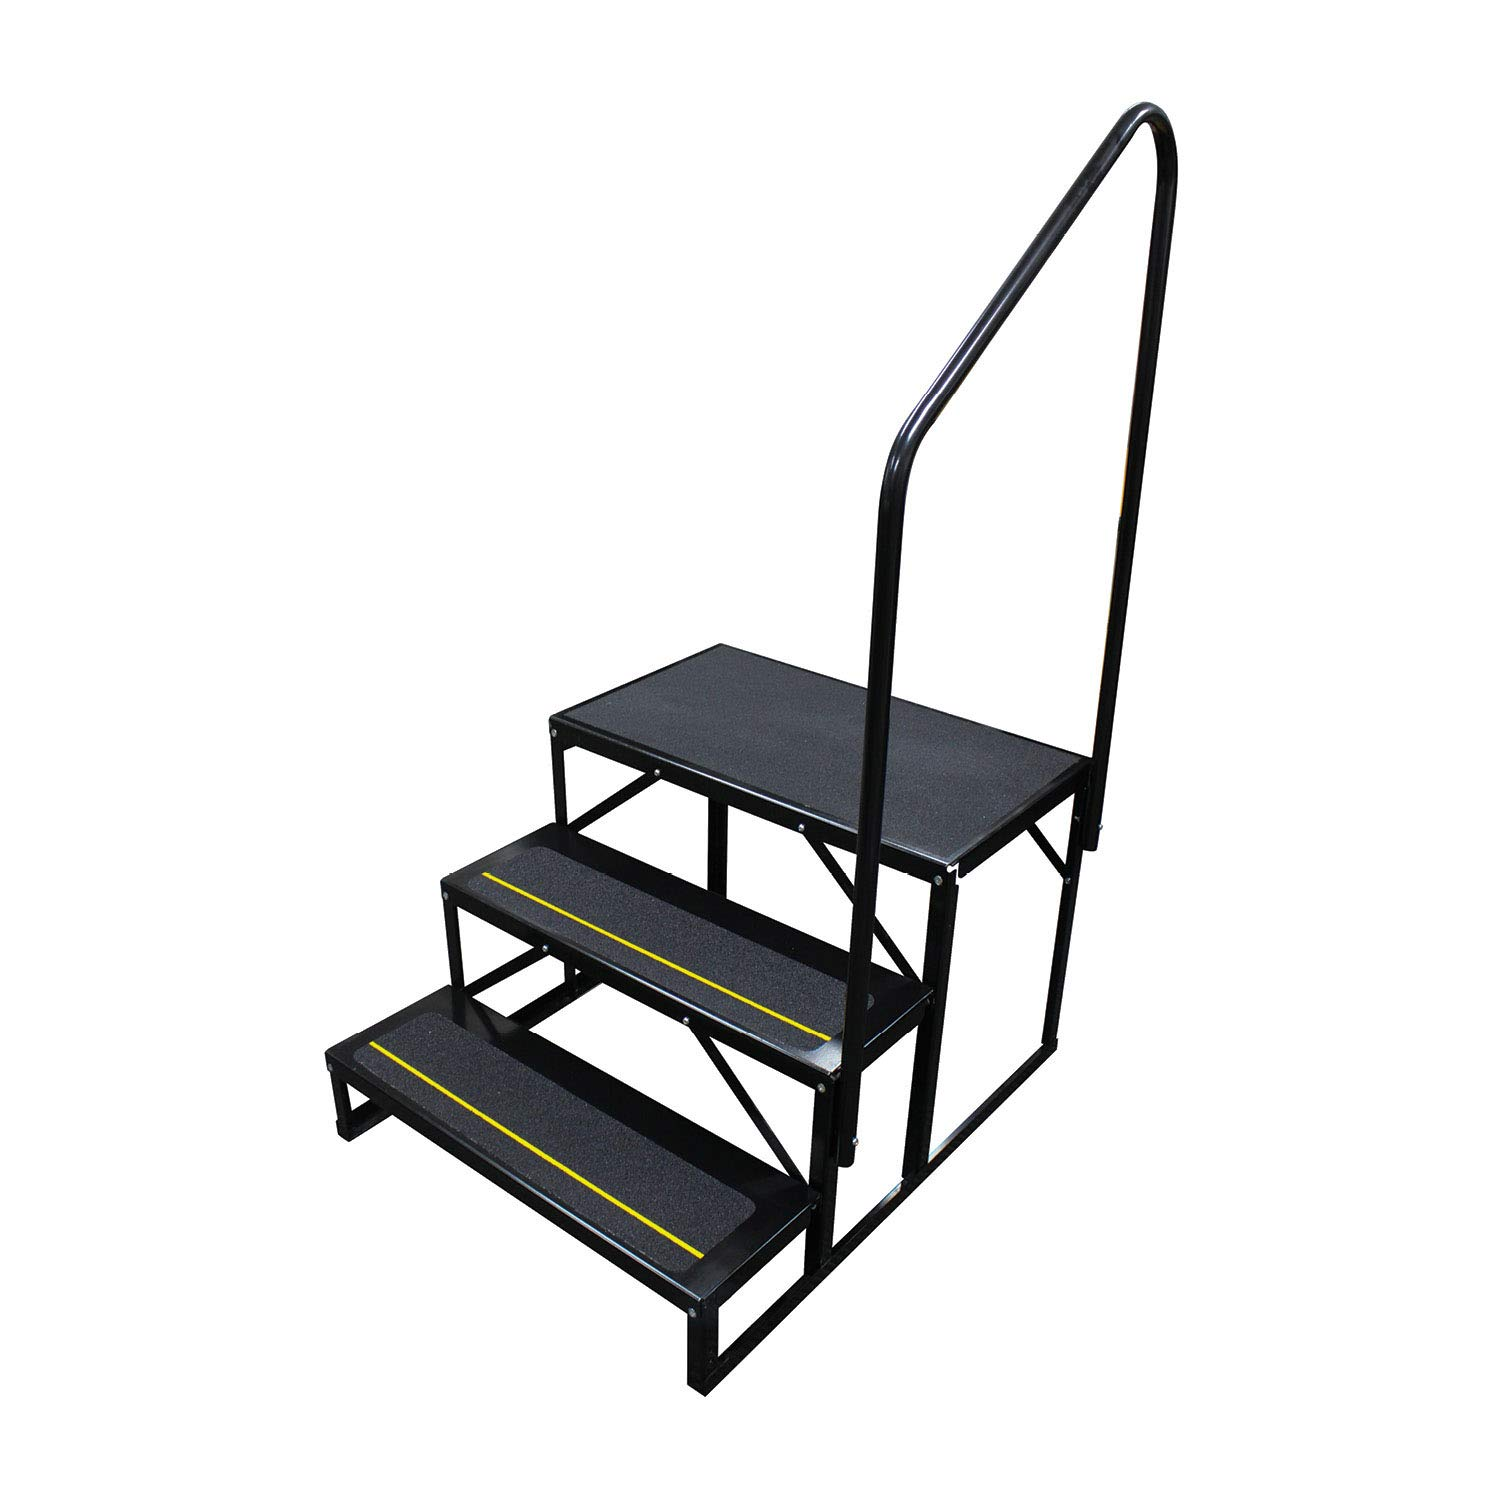 Quick Products Black Standard QP-S5W2S Economy 5th Wheel Stair - 3-Step